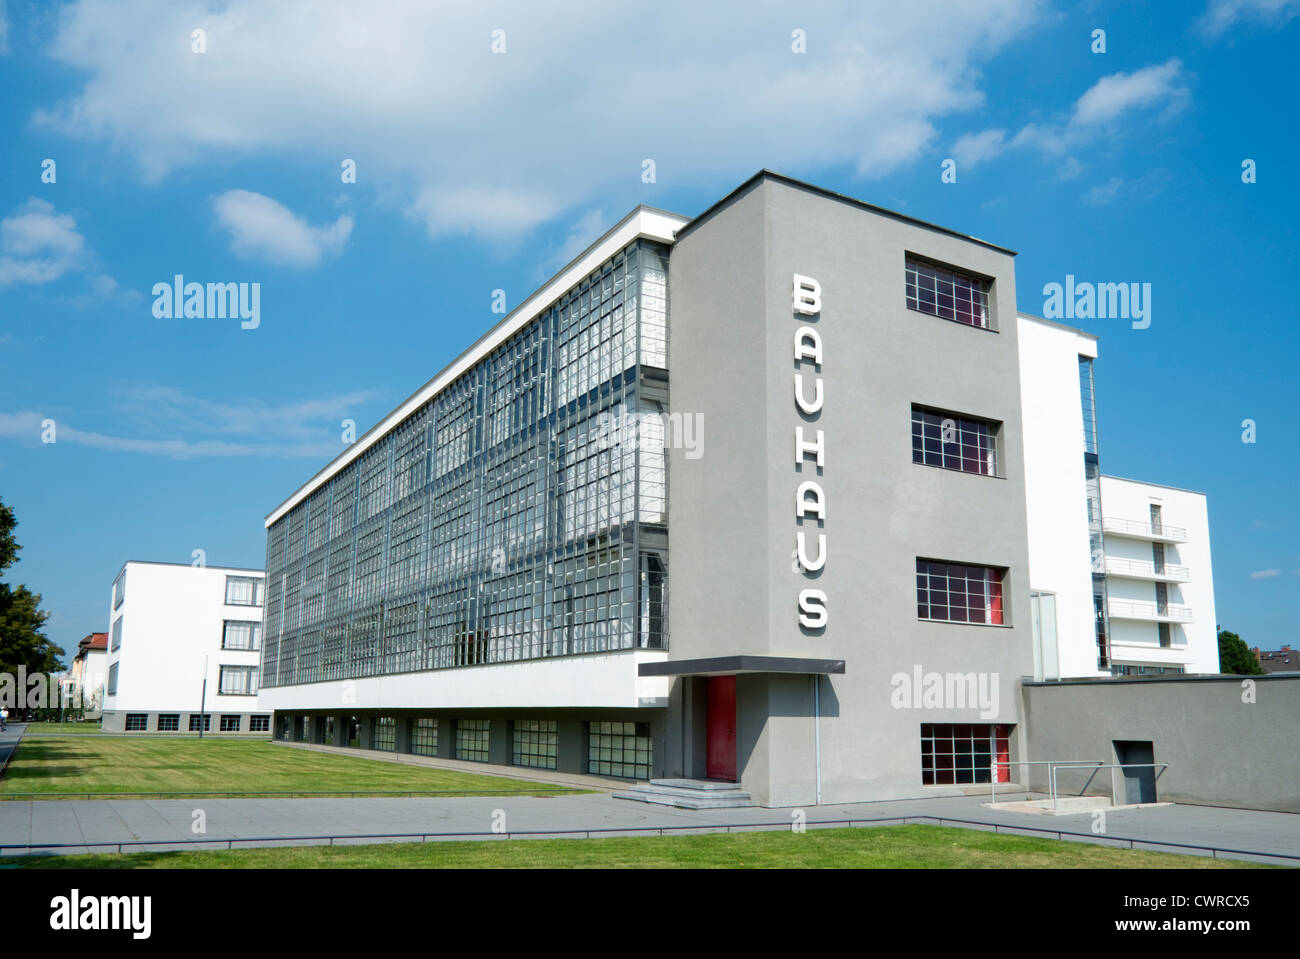 Bauhaus Building And Architecture School Designed By Walter Gropius